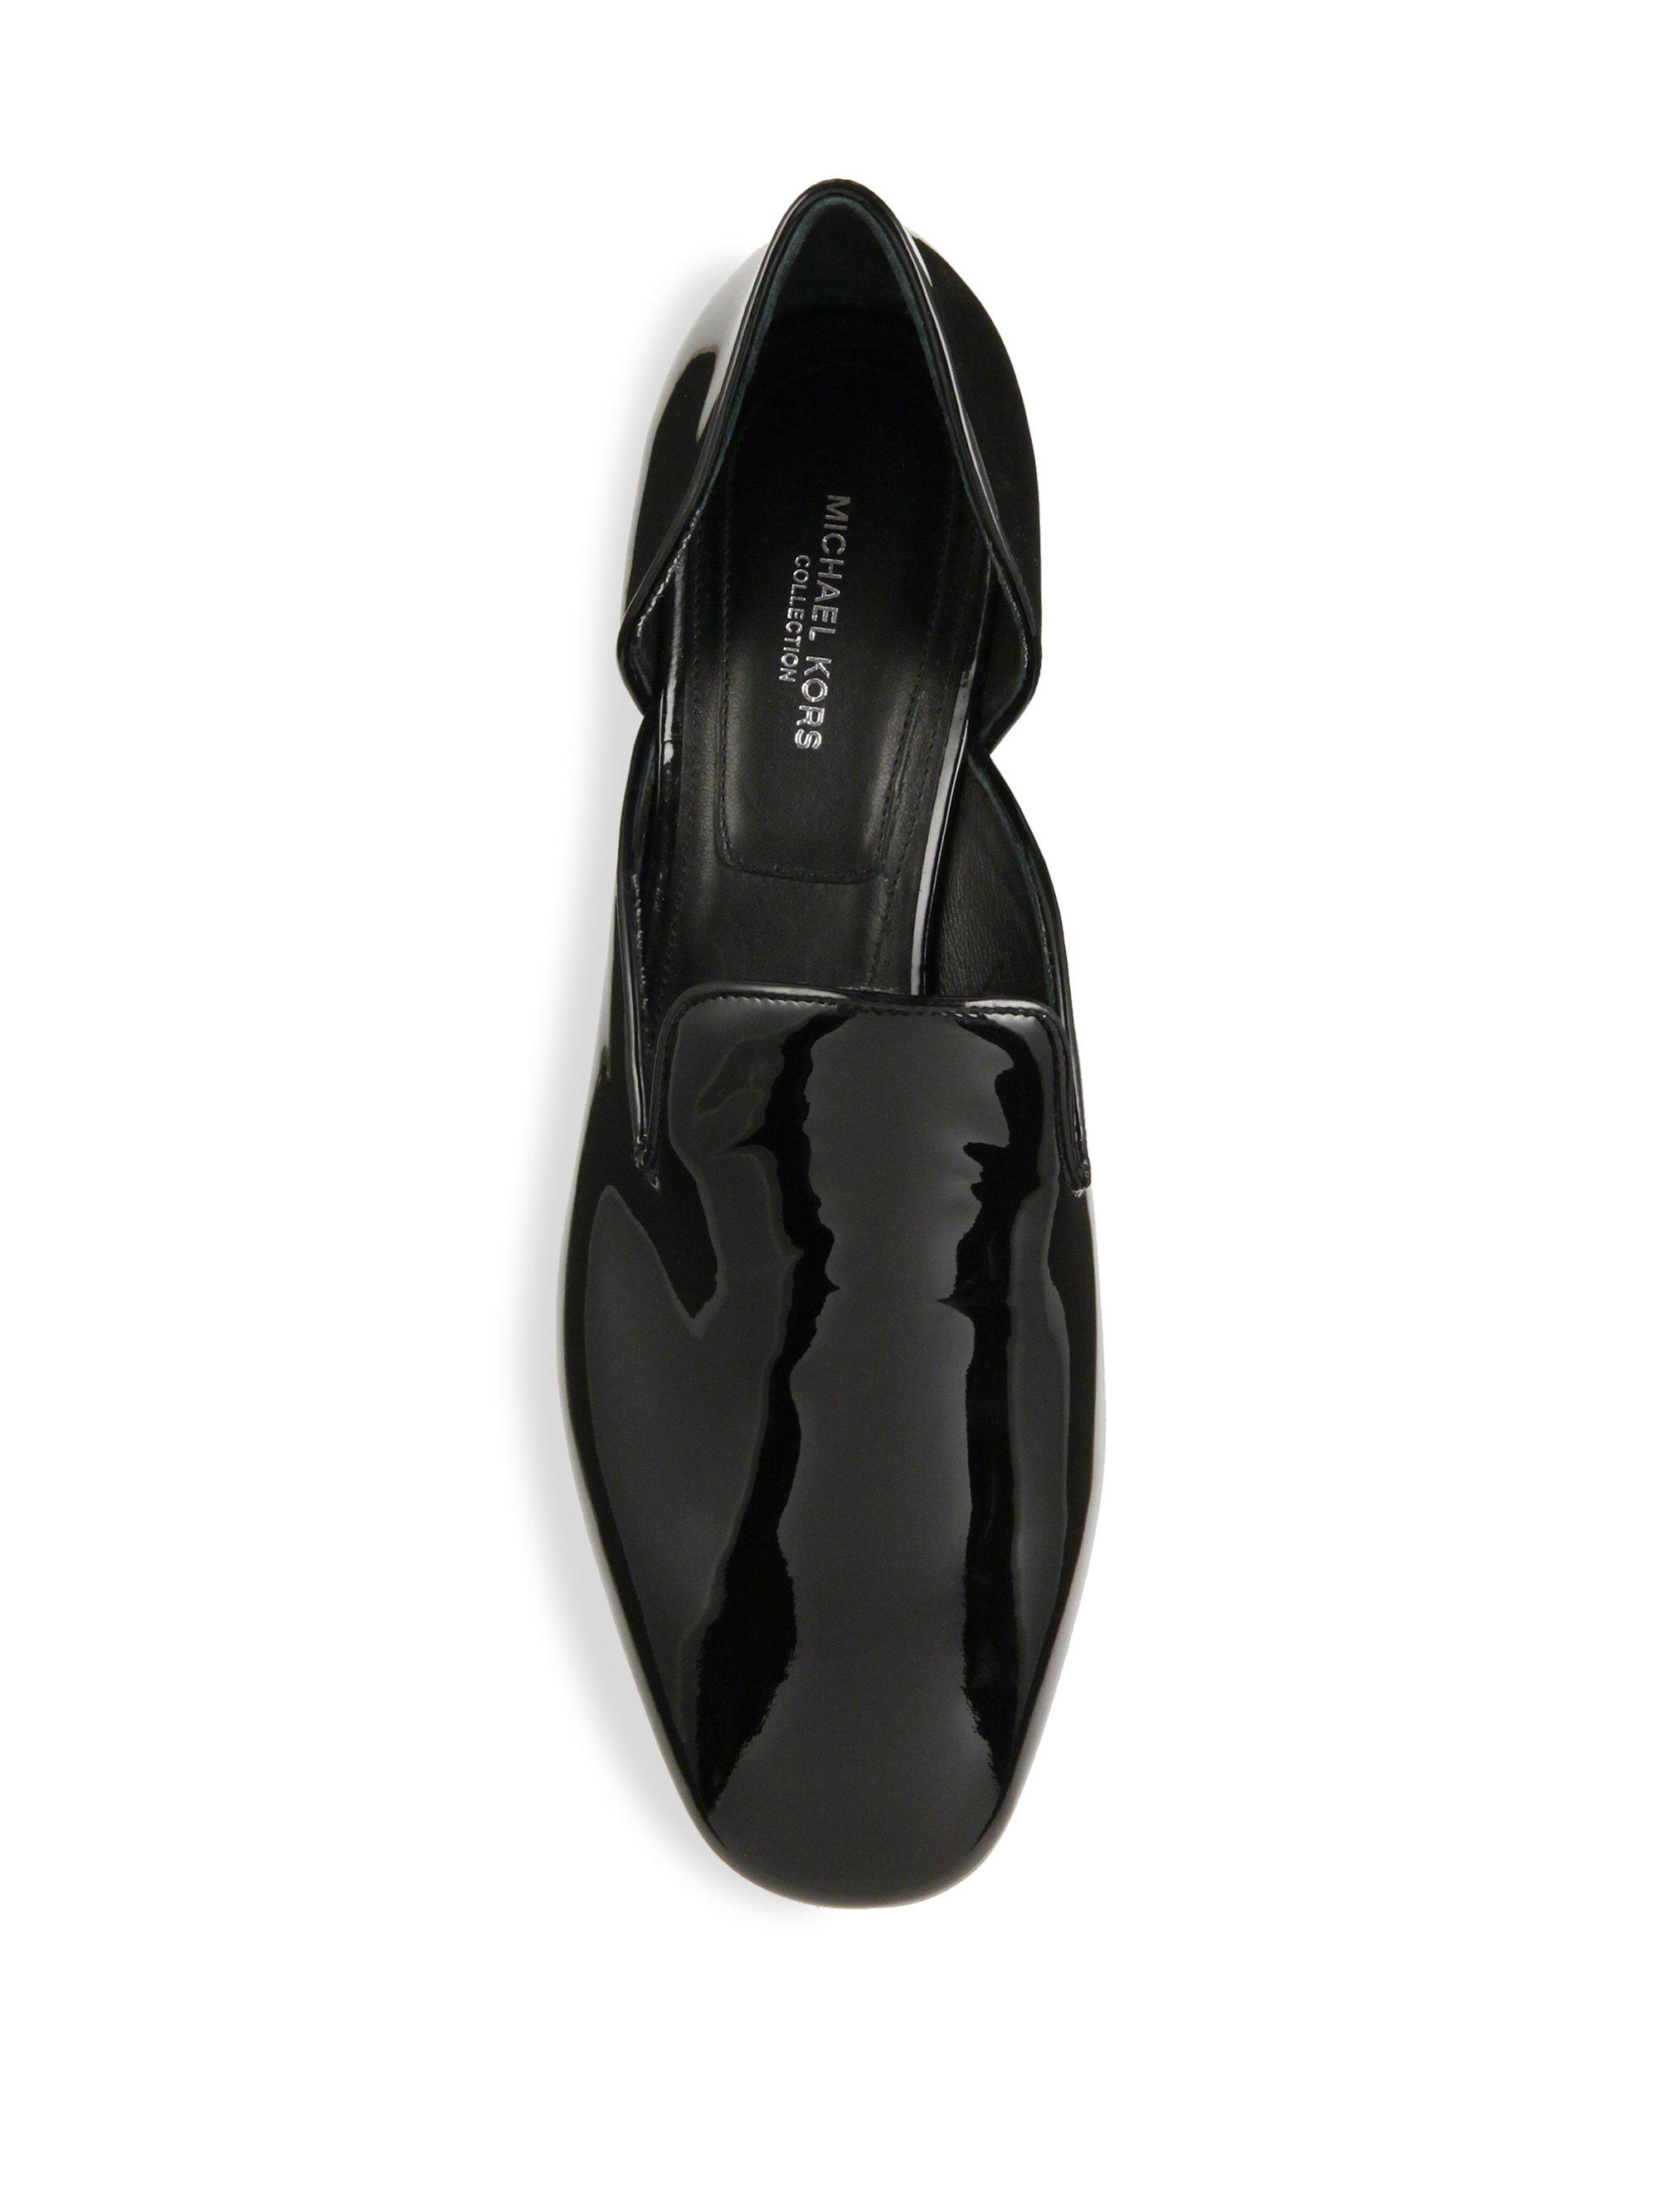 Lyst Michael Kors Fielding Patent Leather Loafers In Black